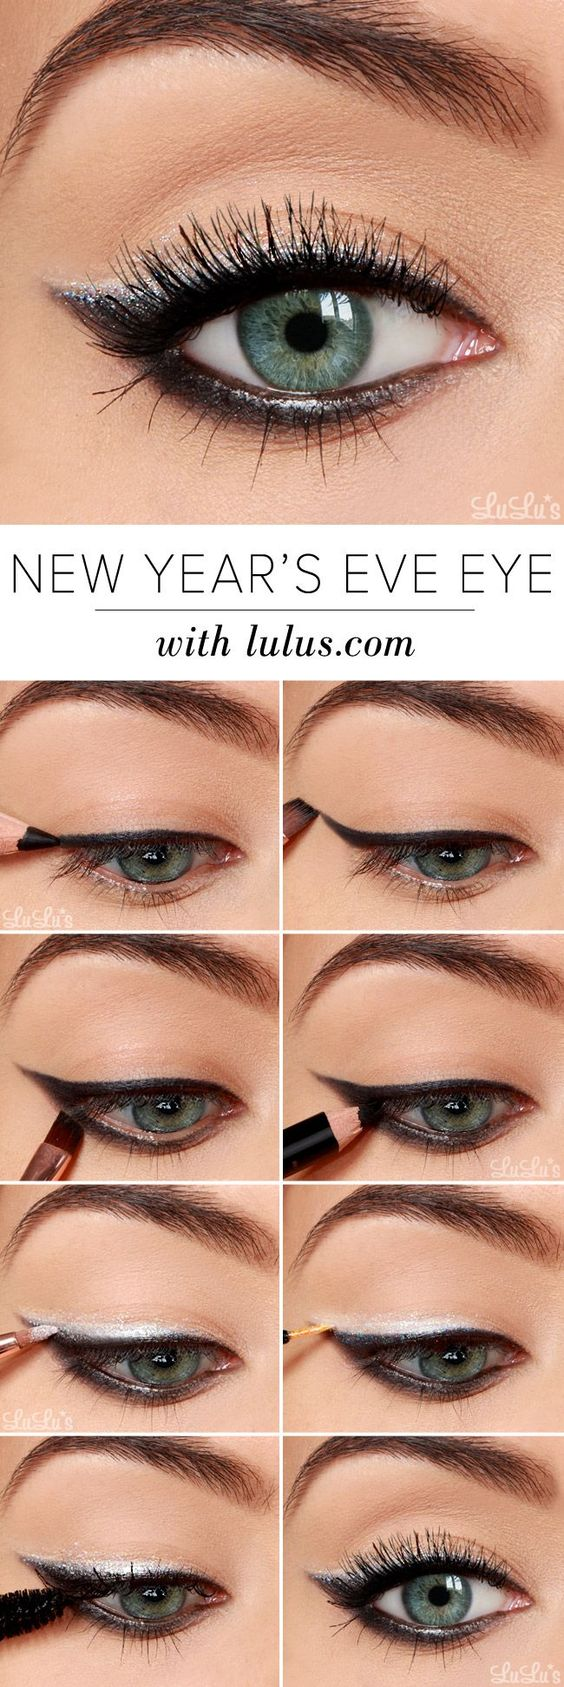 { New Year's Eve Eyeshadow } I know I'm almost 4 months late but this makeup look is so perfect! Can be for any special occasion though❤️